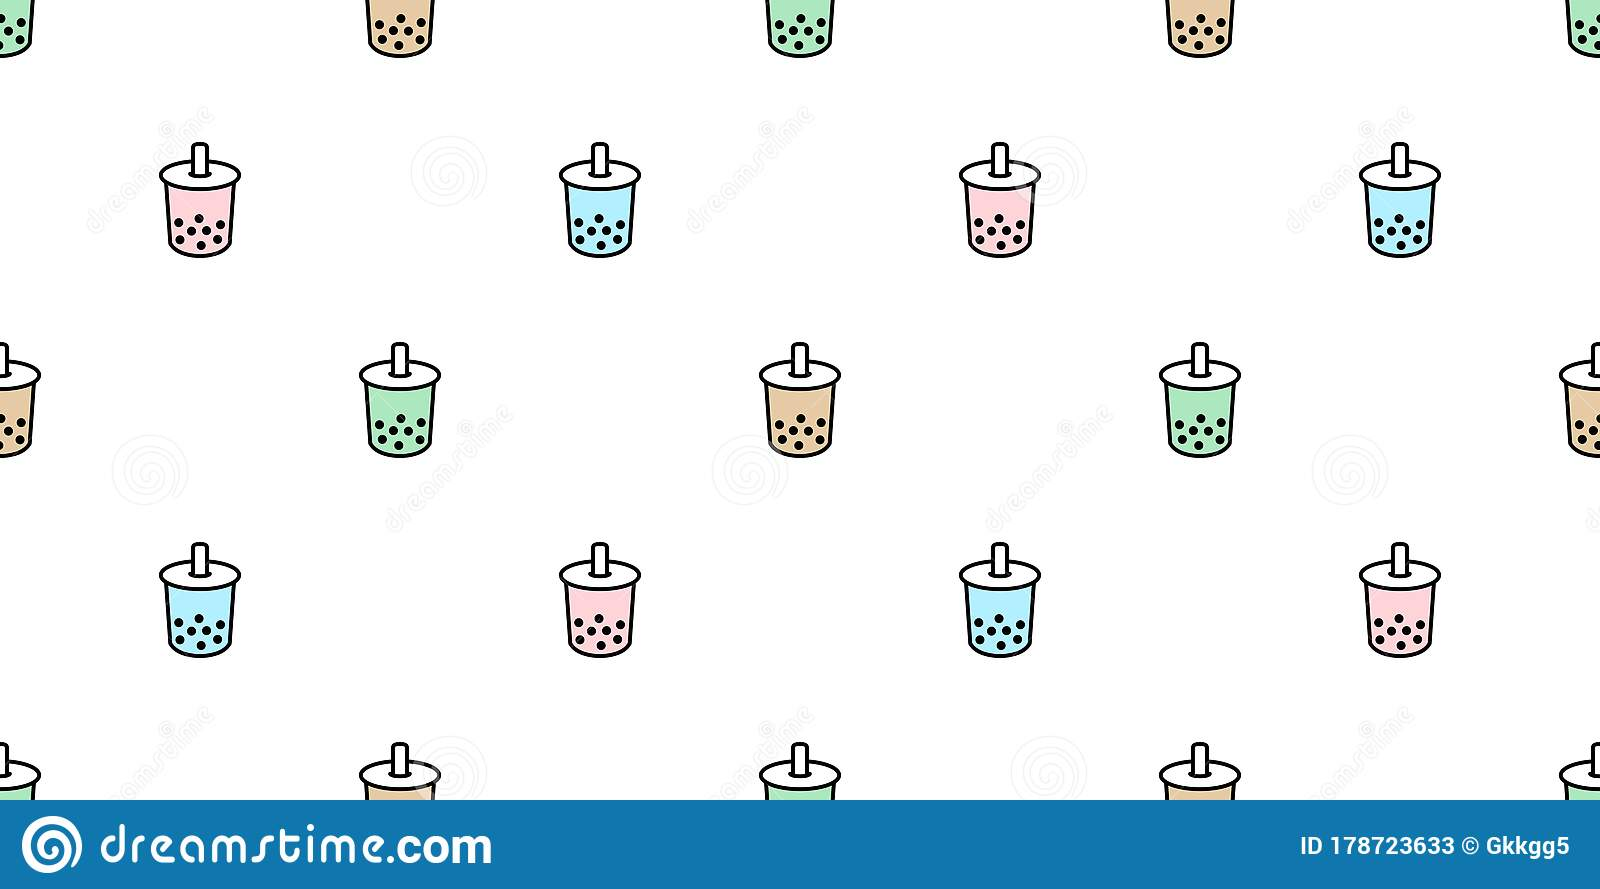 boba tea stock illustrations 1 432 boba tea stock illustrations vectors clipart dreamstime dreamstime com